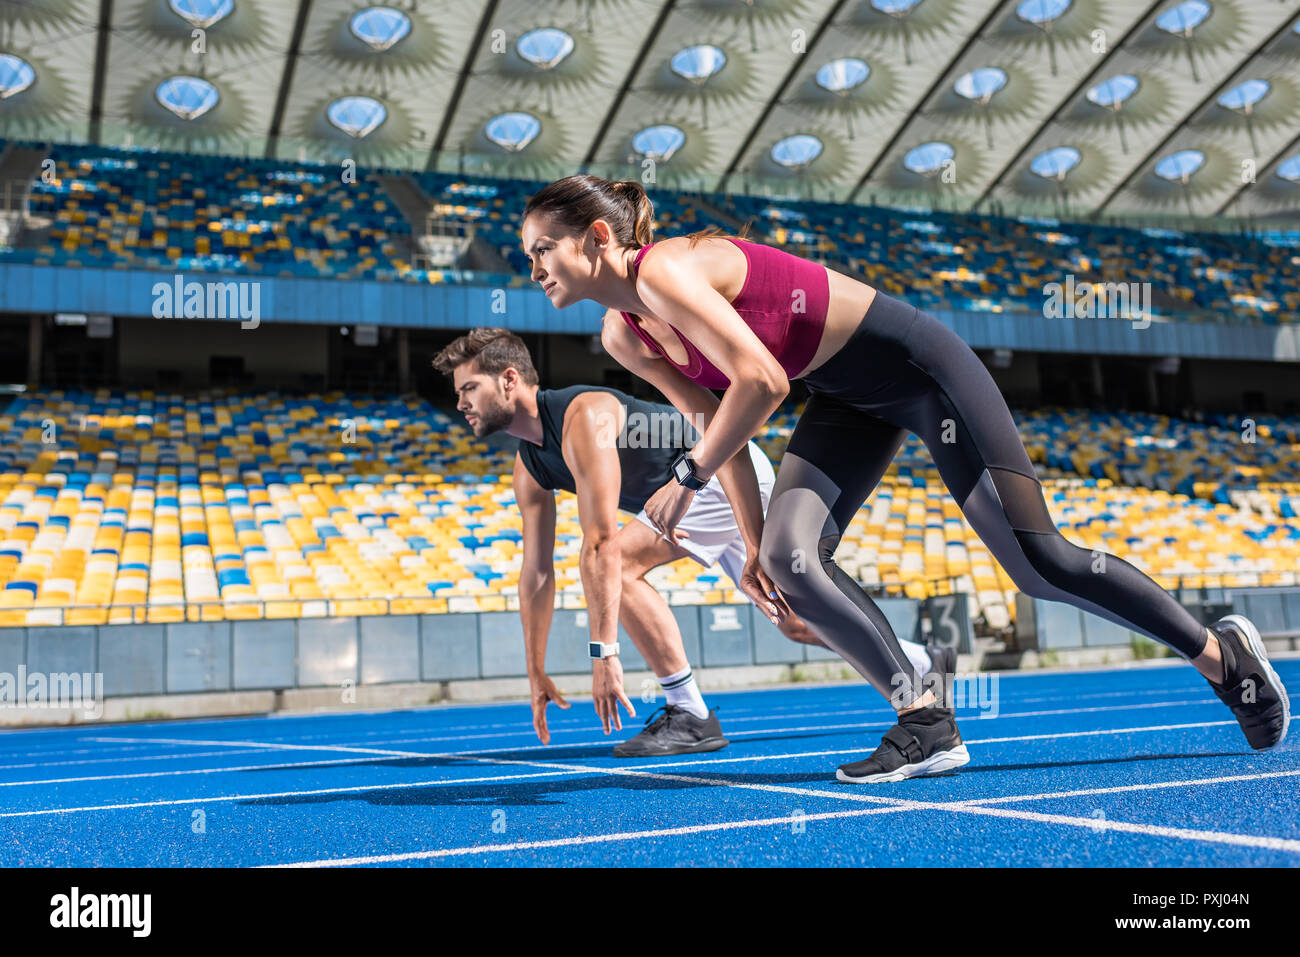 athletic young male and female sprinters in start position on running track at sports stadium - Stock Image